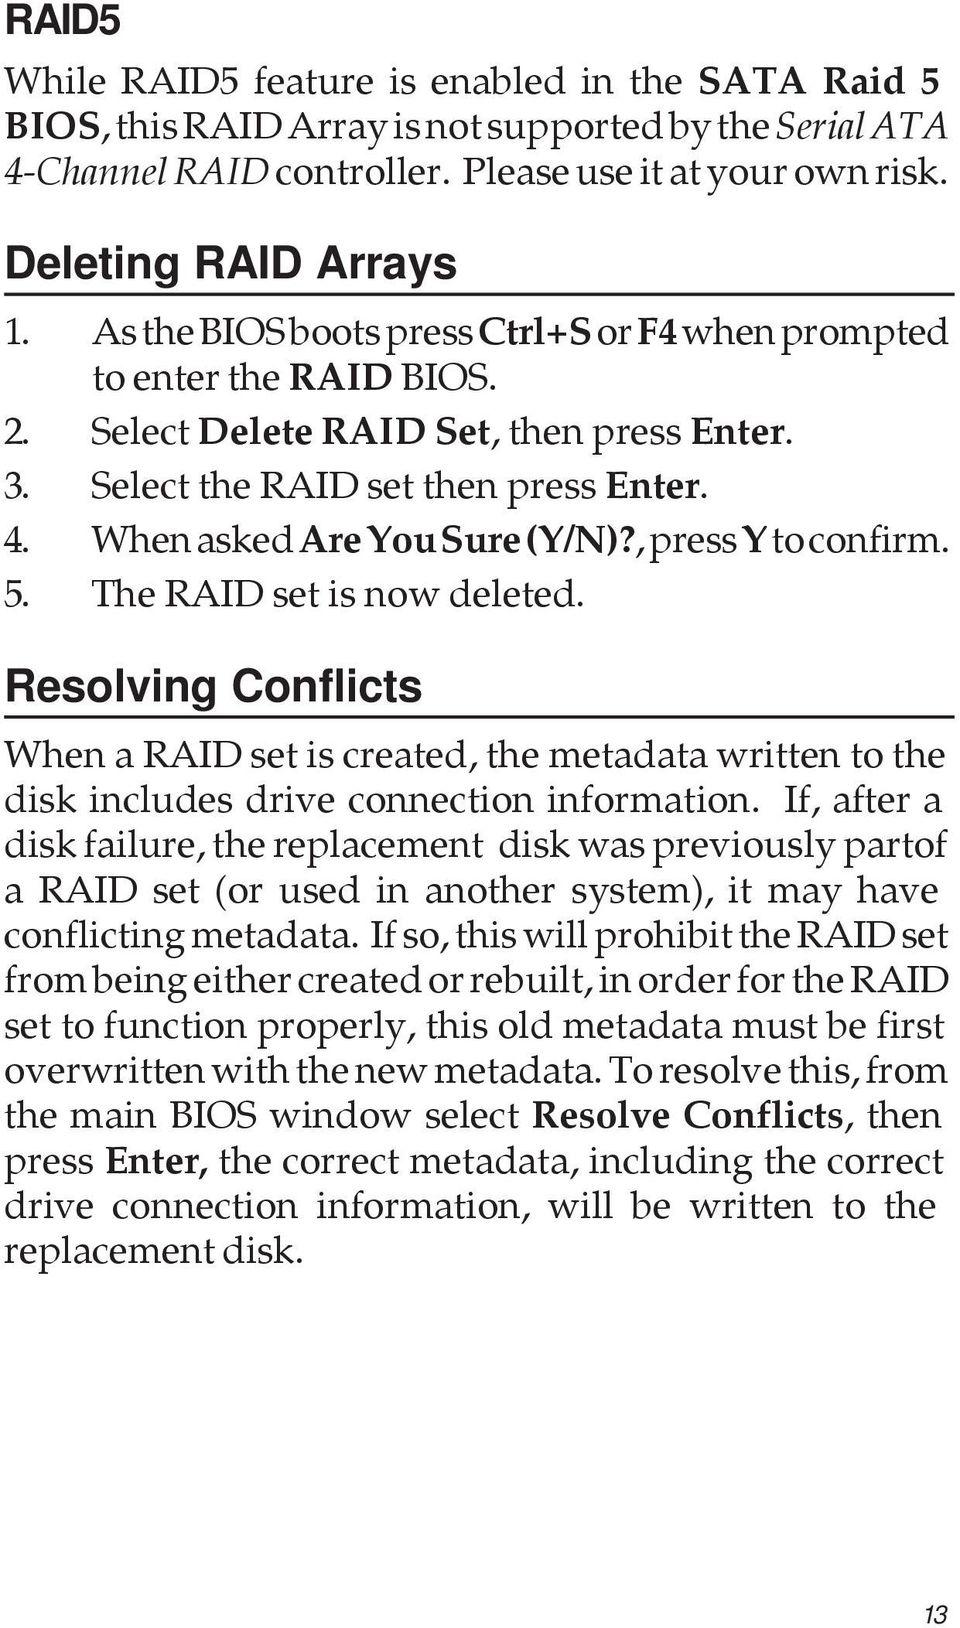 , press Y to confirm. 5. The RAID set is now deleted. Resolving Conflicts When a RAID set is created, the metadata written to the disk includes drive connection information.